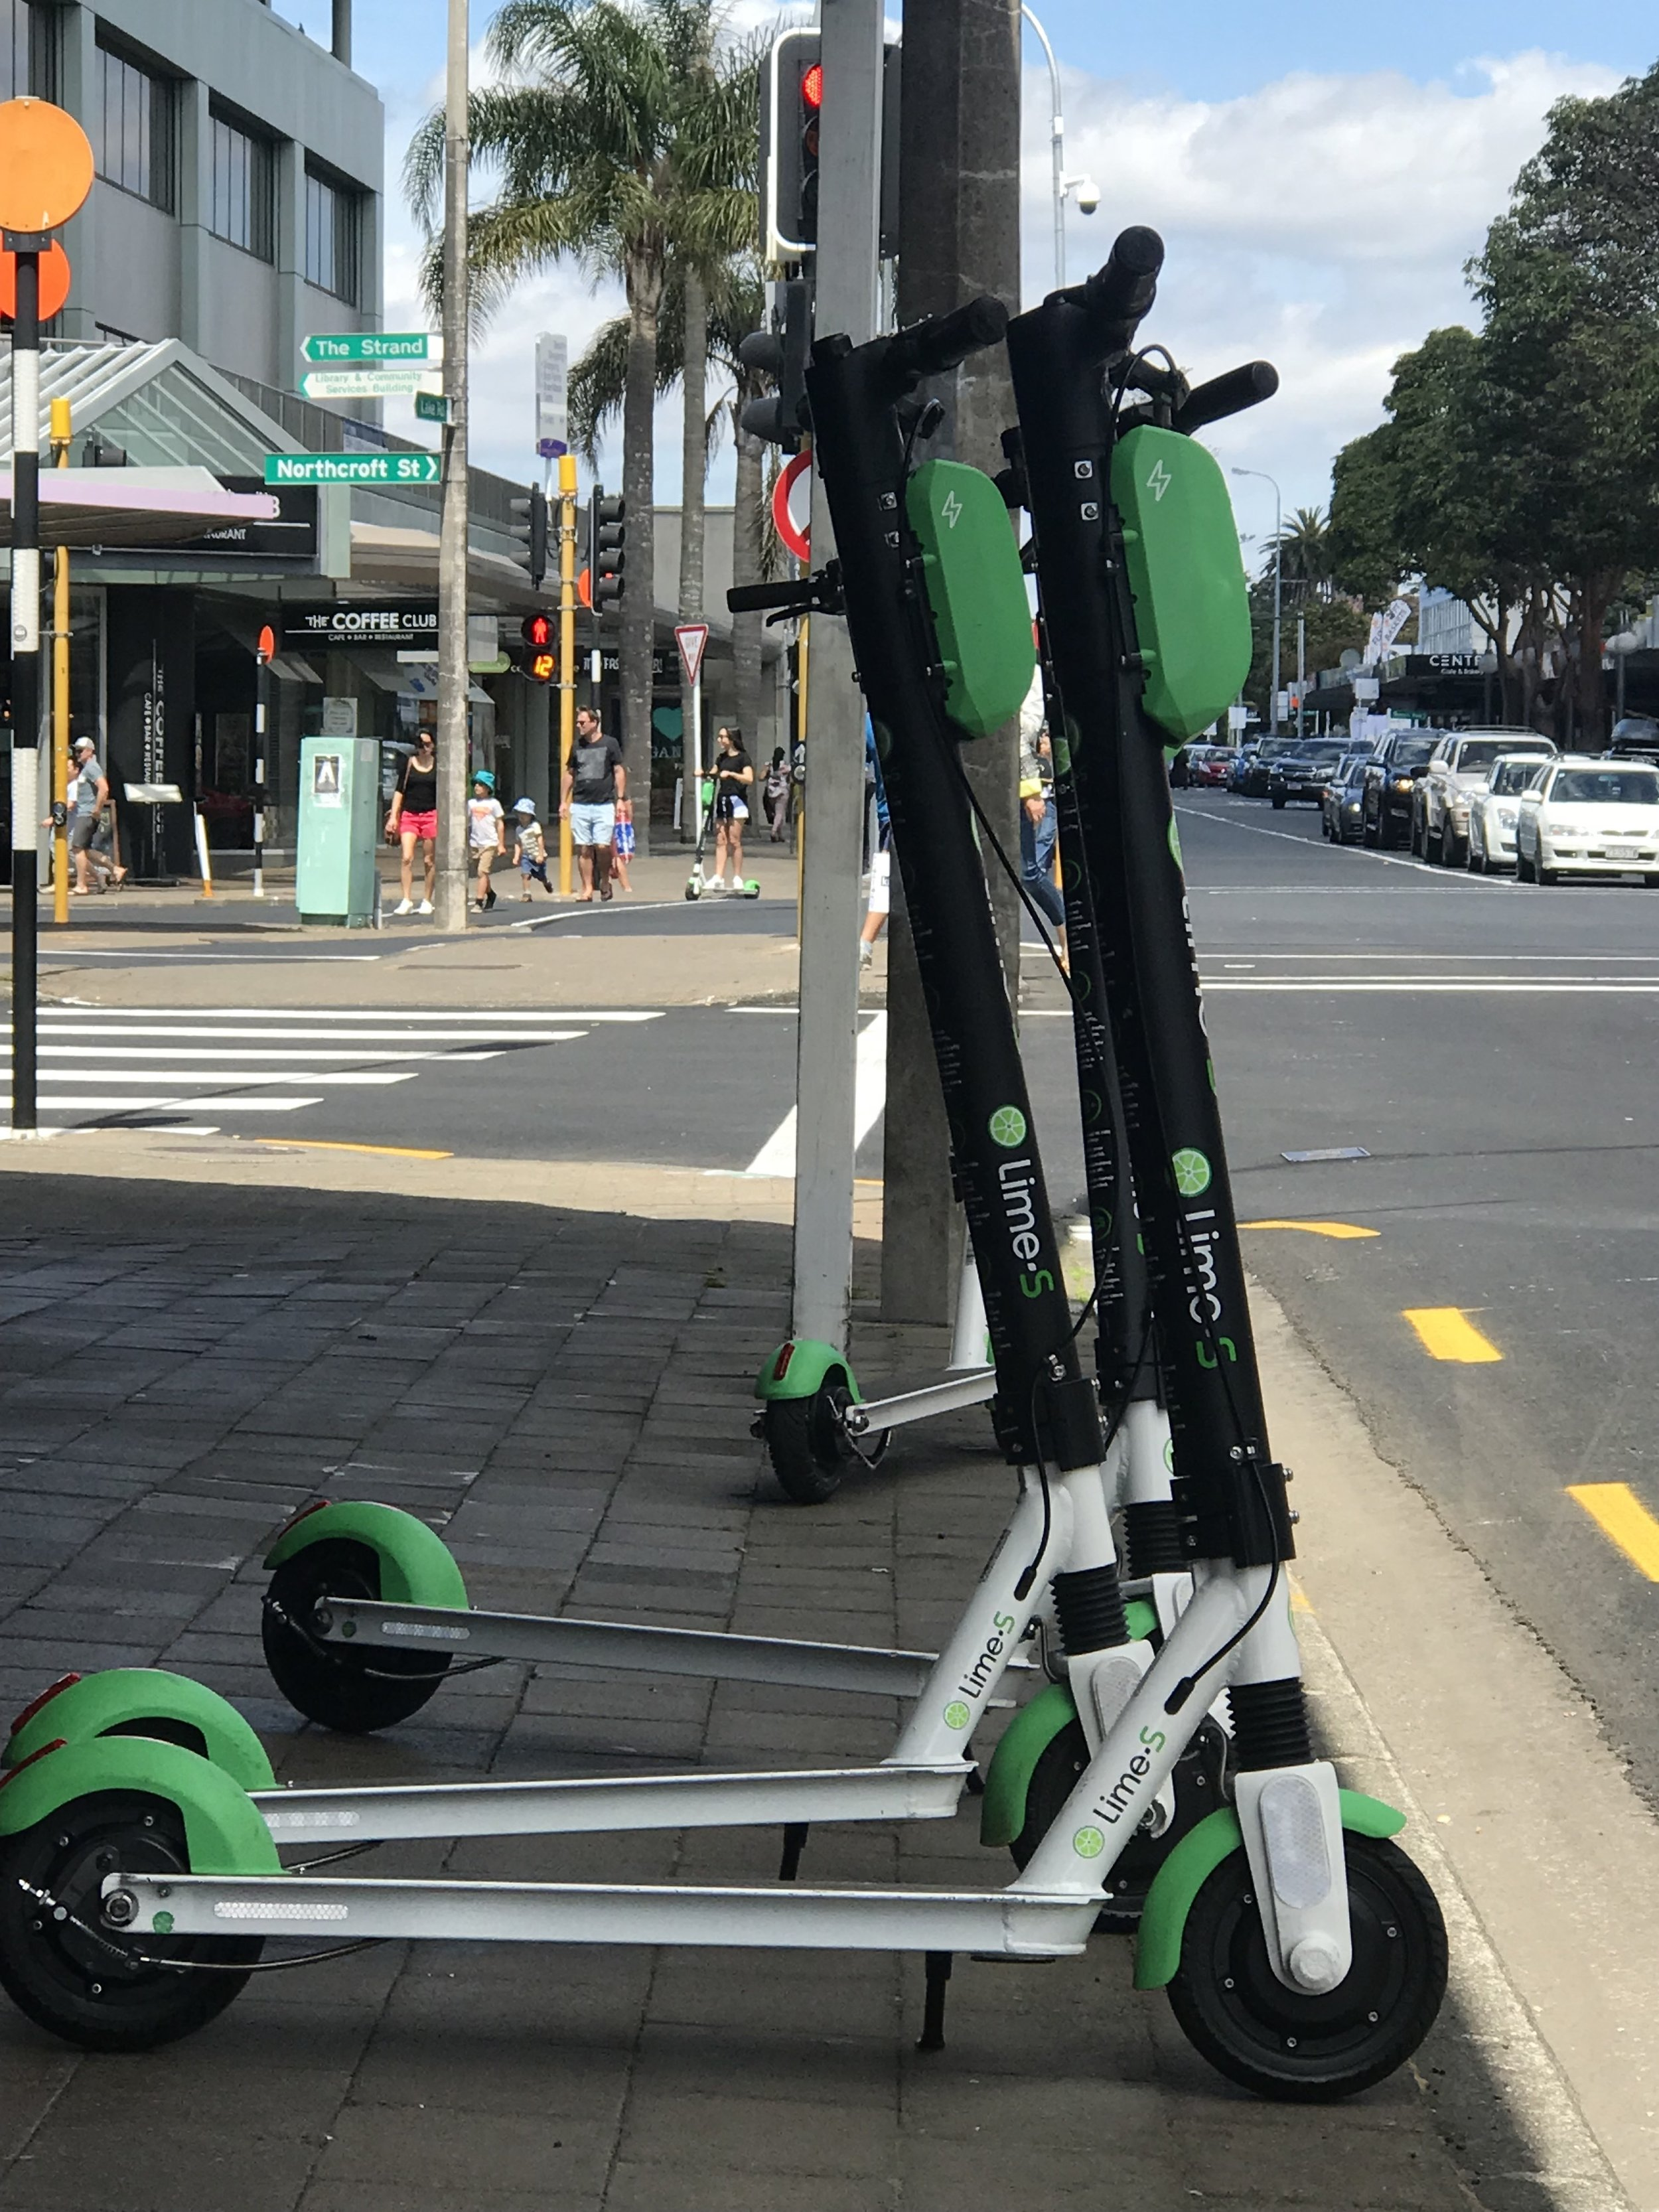 The Lime scooters in Takapuna, Auckland over Labour weekend, just days after the scheme started in the city.